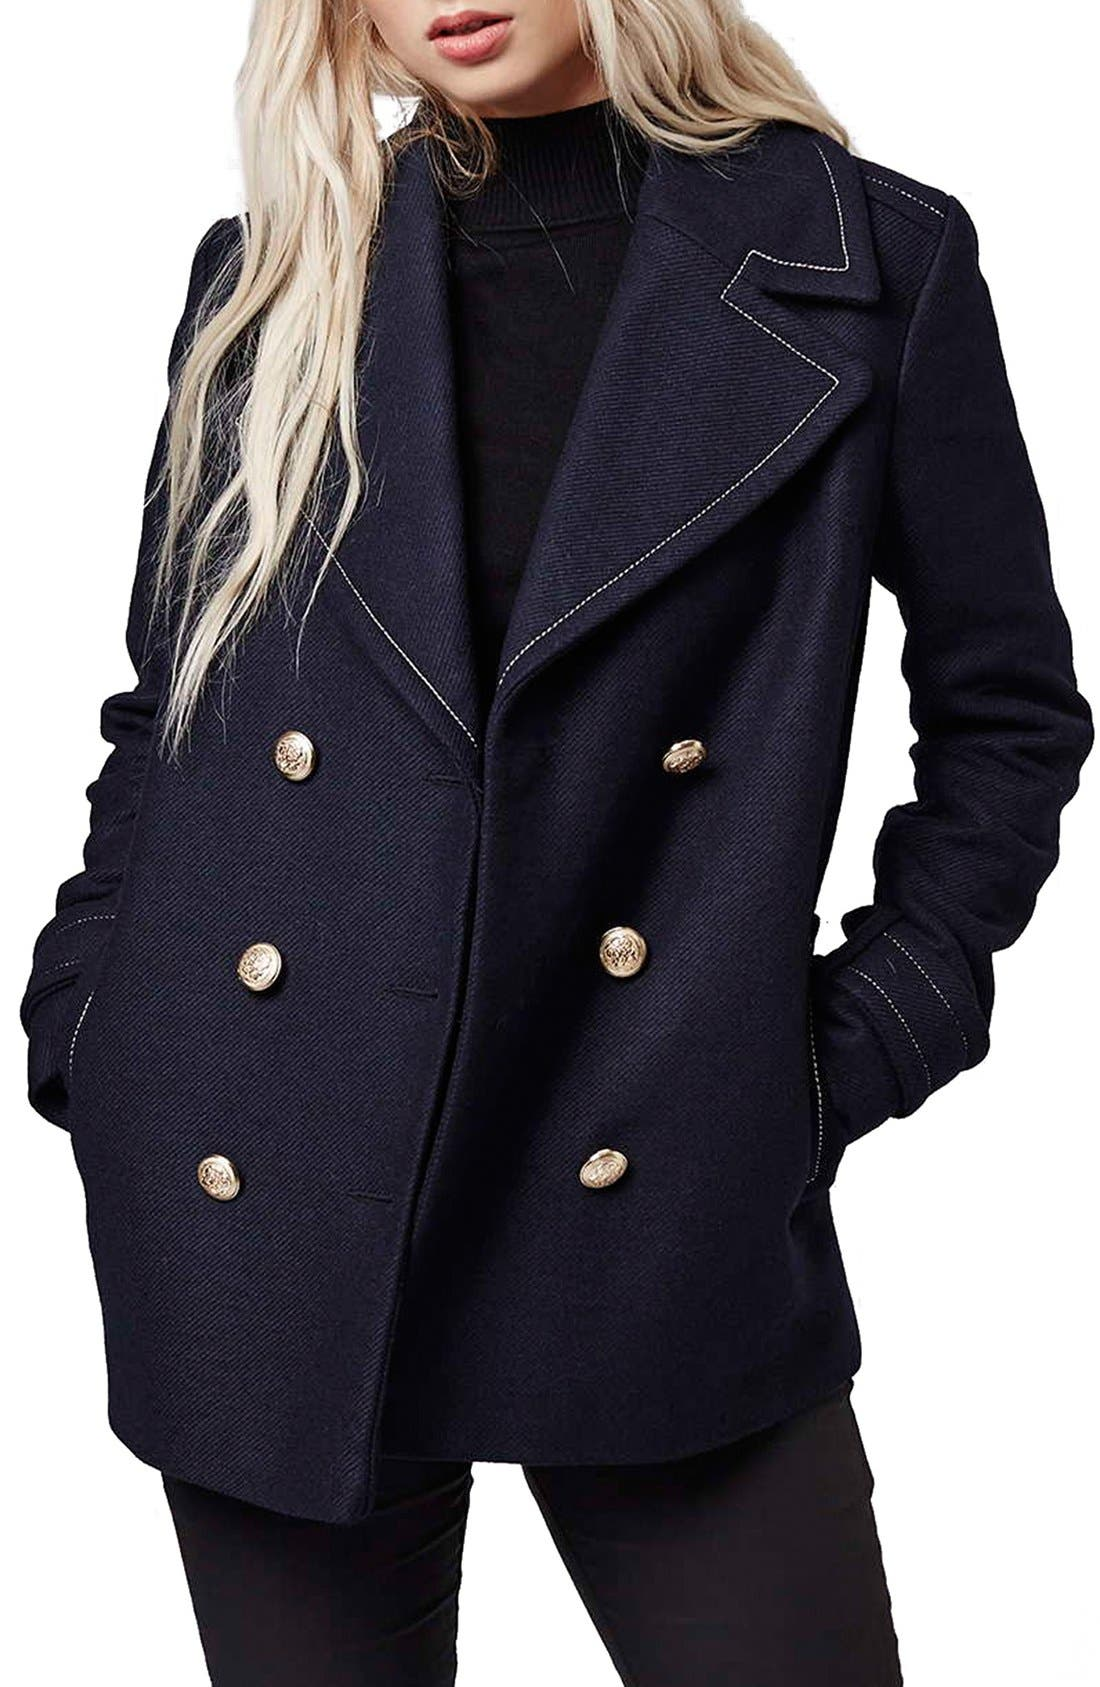 Alternate Image 1 Selected - Topshop Contrast Stitch Peacoat